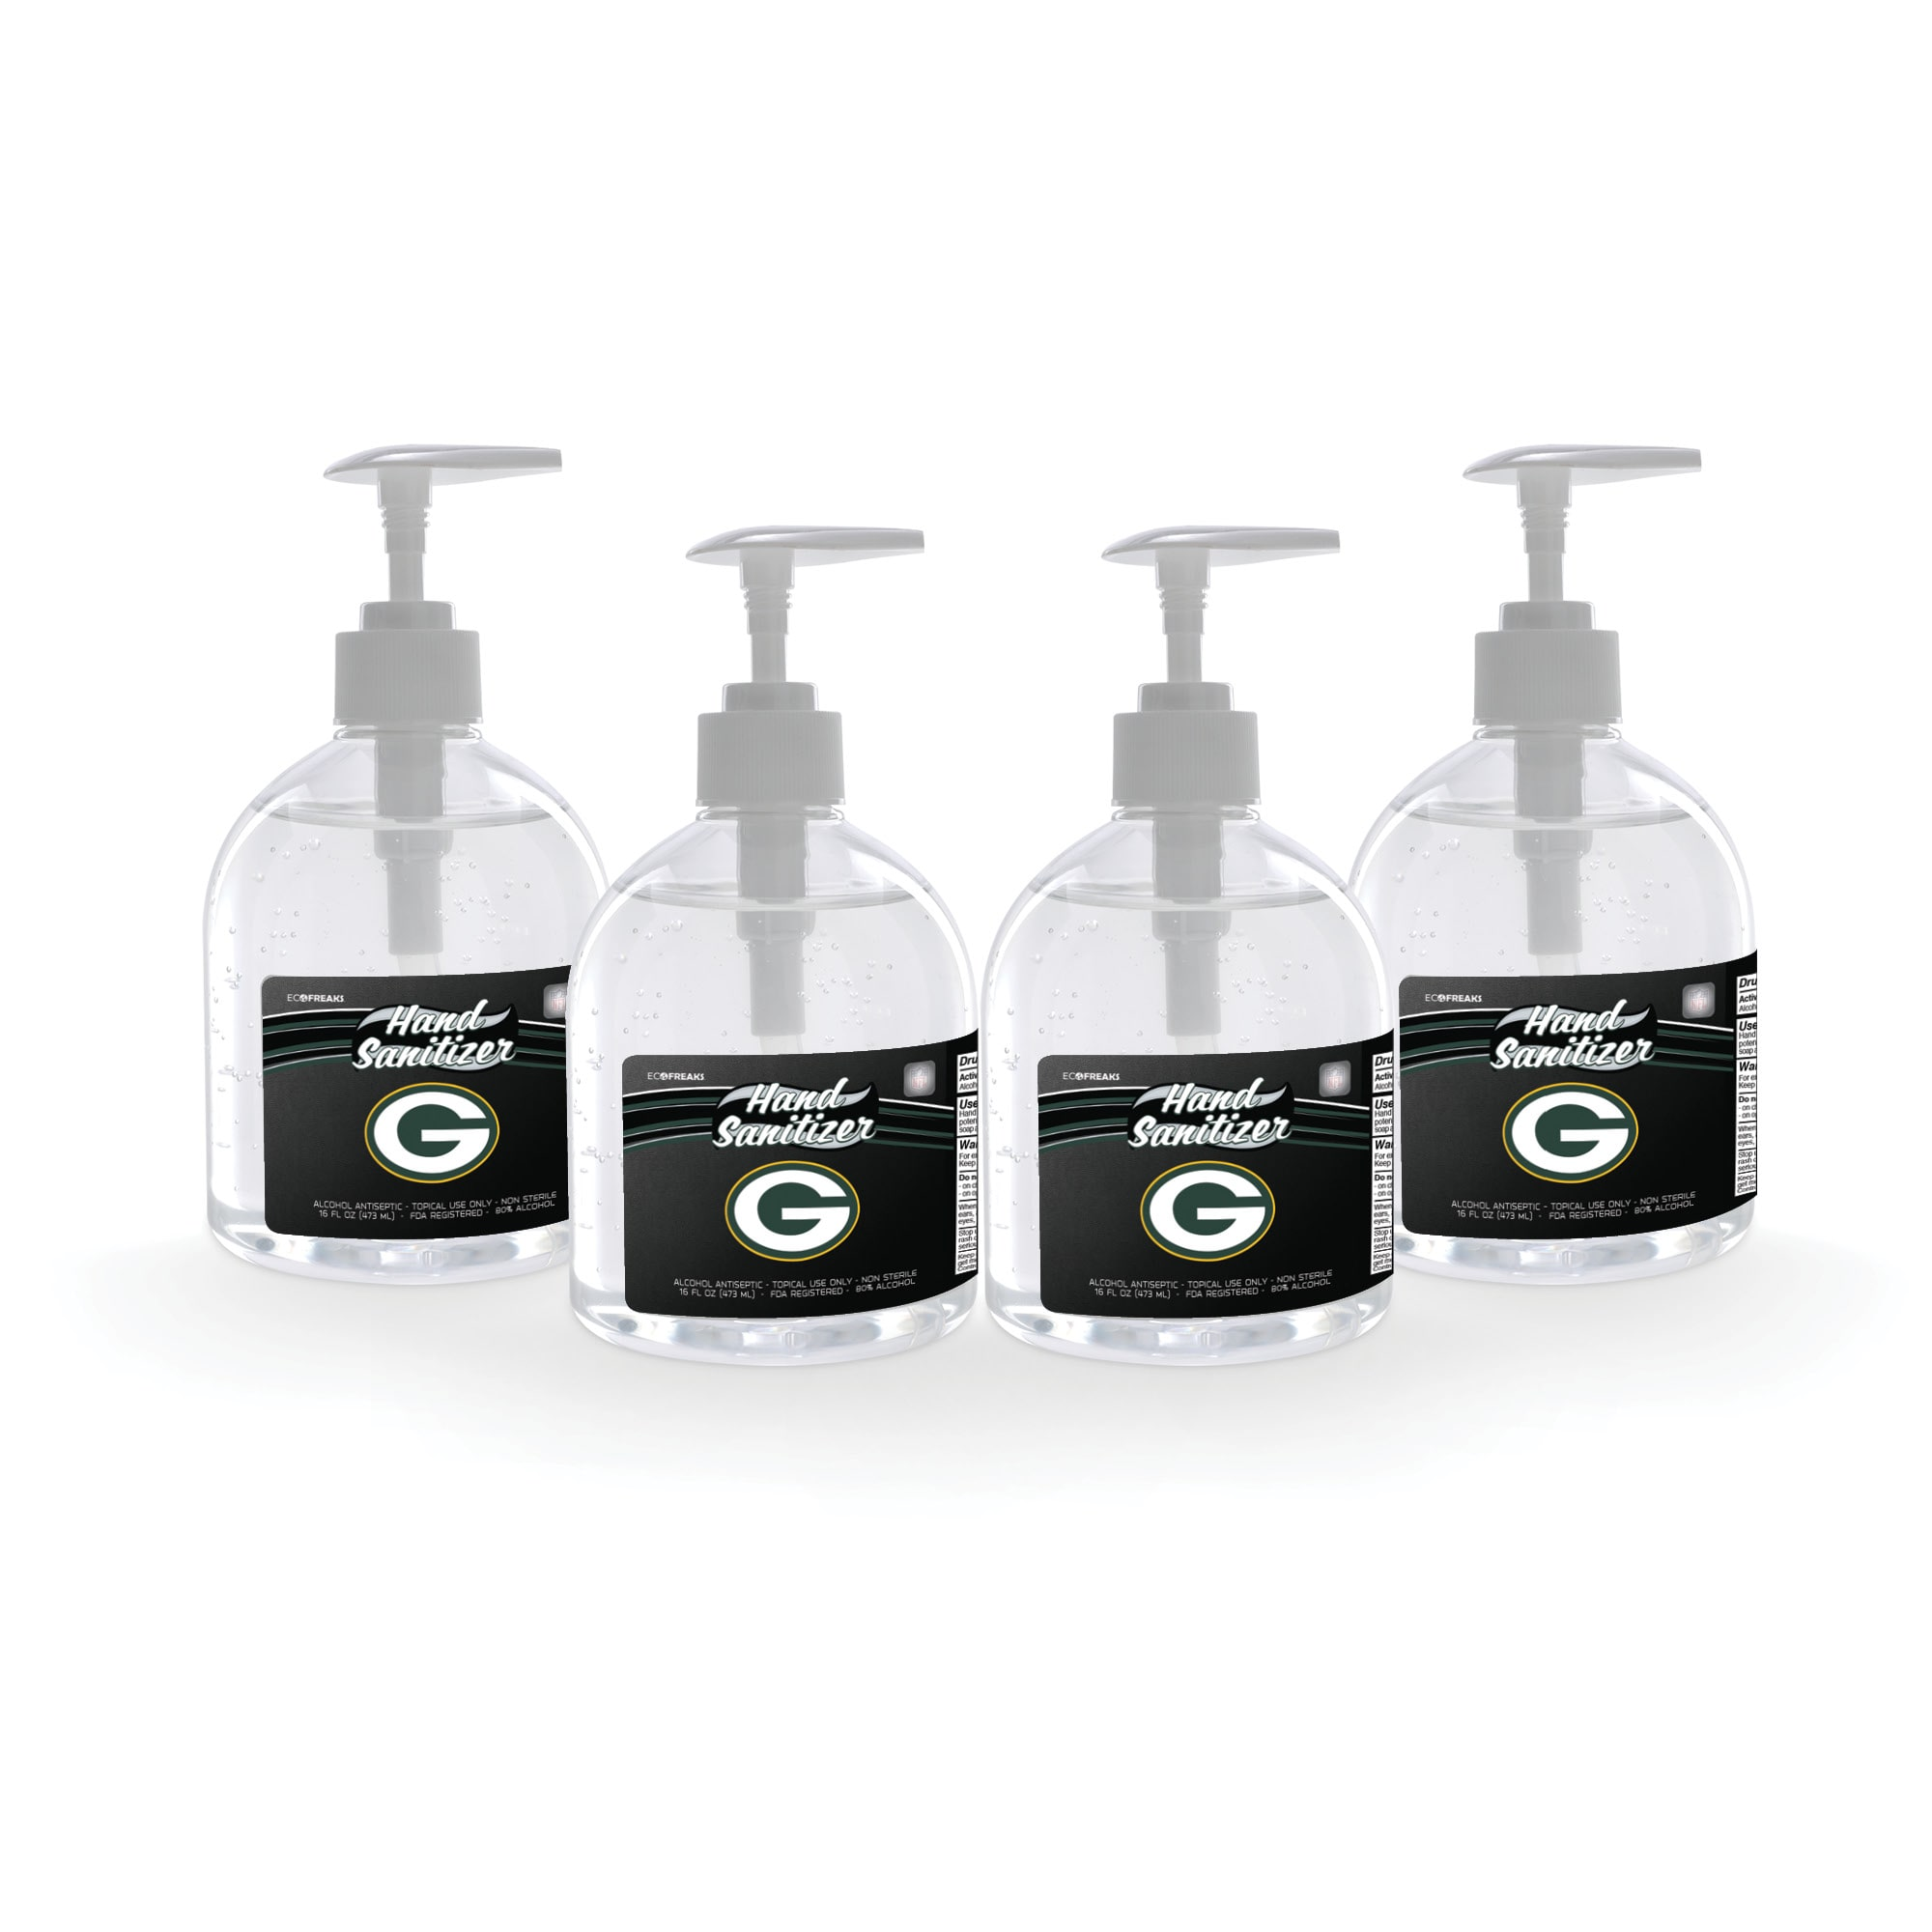 Green Bay Packers 16oz. Hand Sanitizer 4-Pack